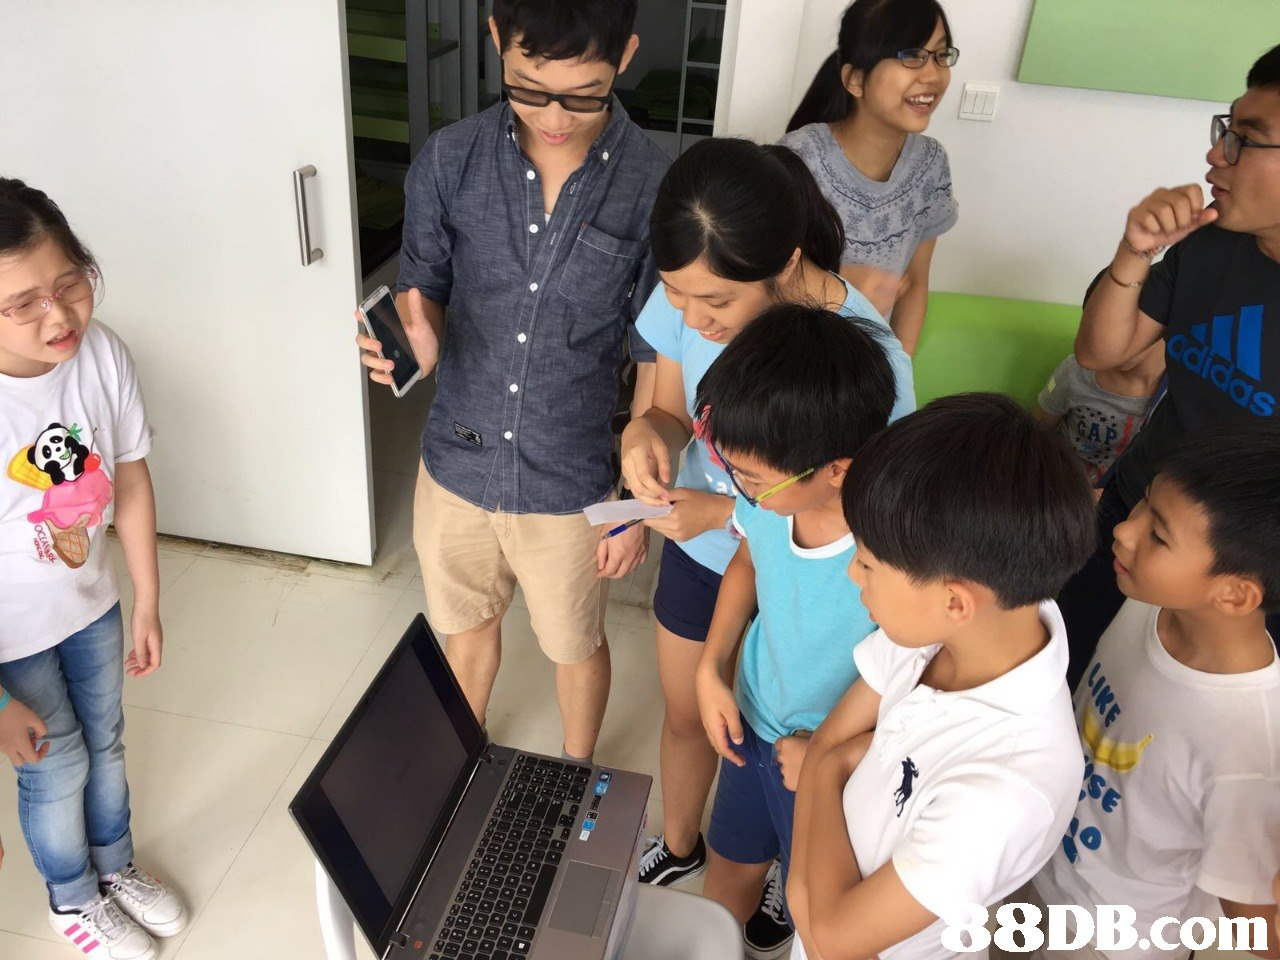 8DB.com  room,education,child,learning,school